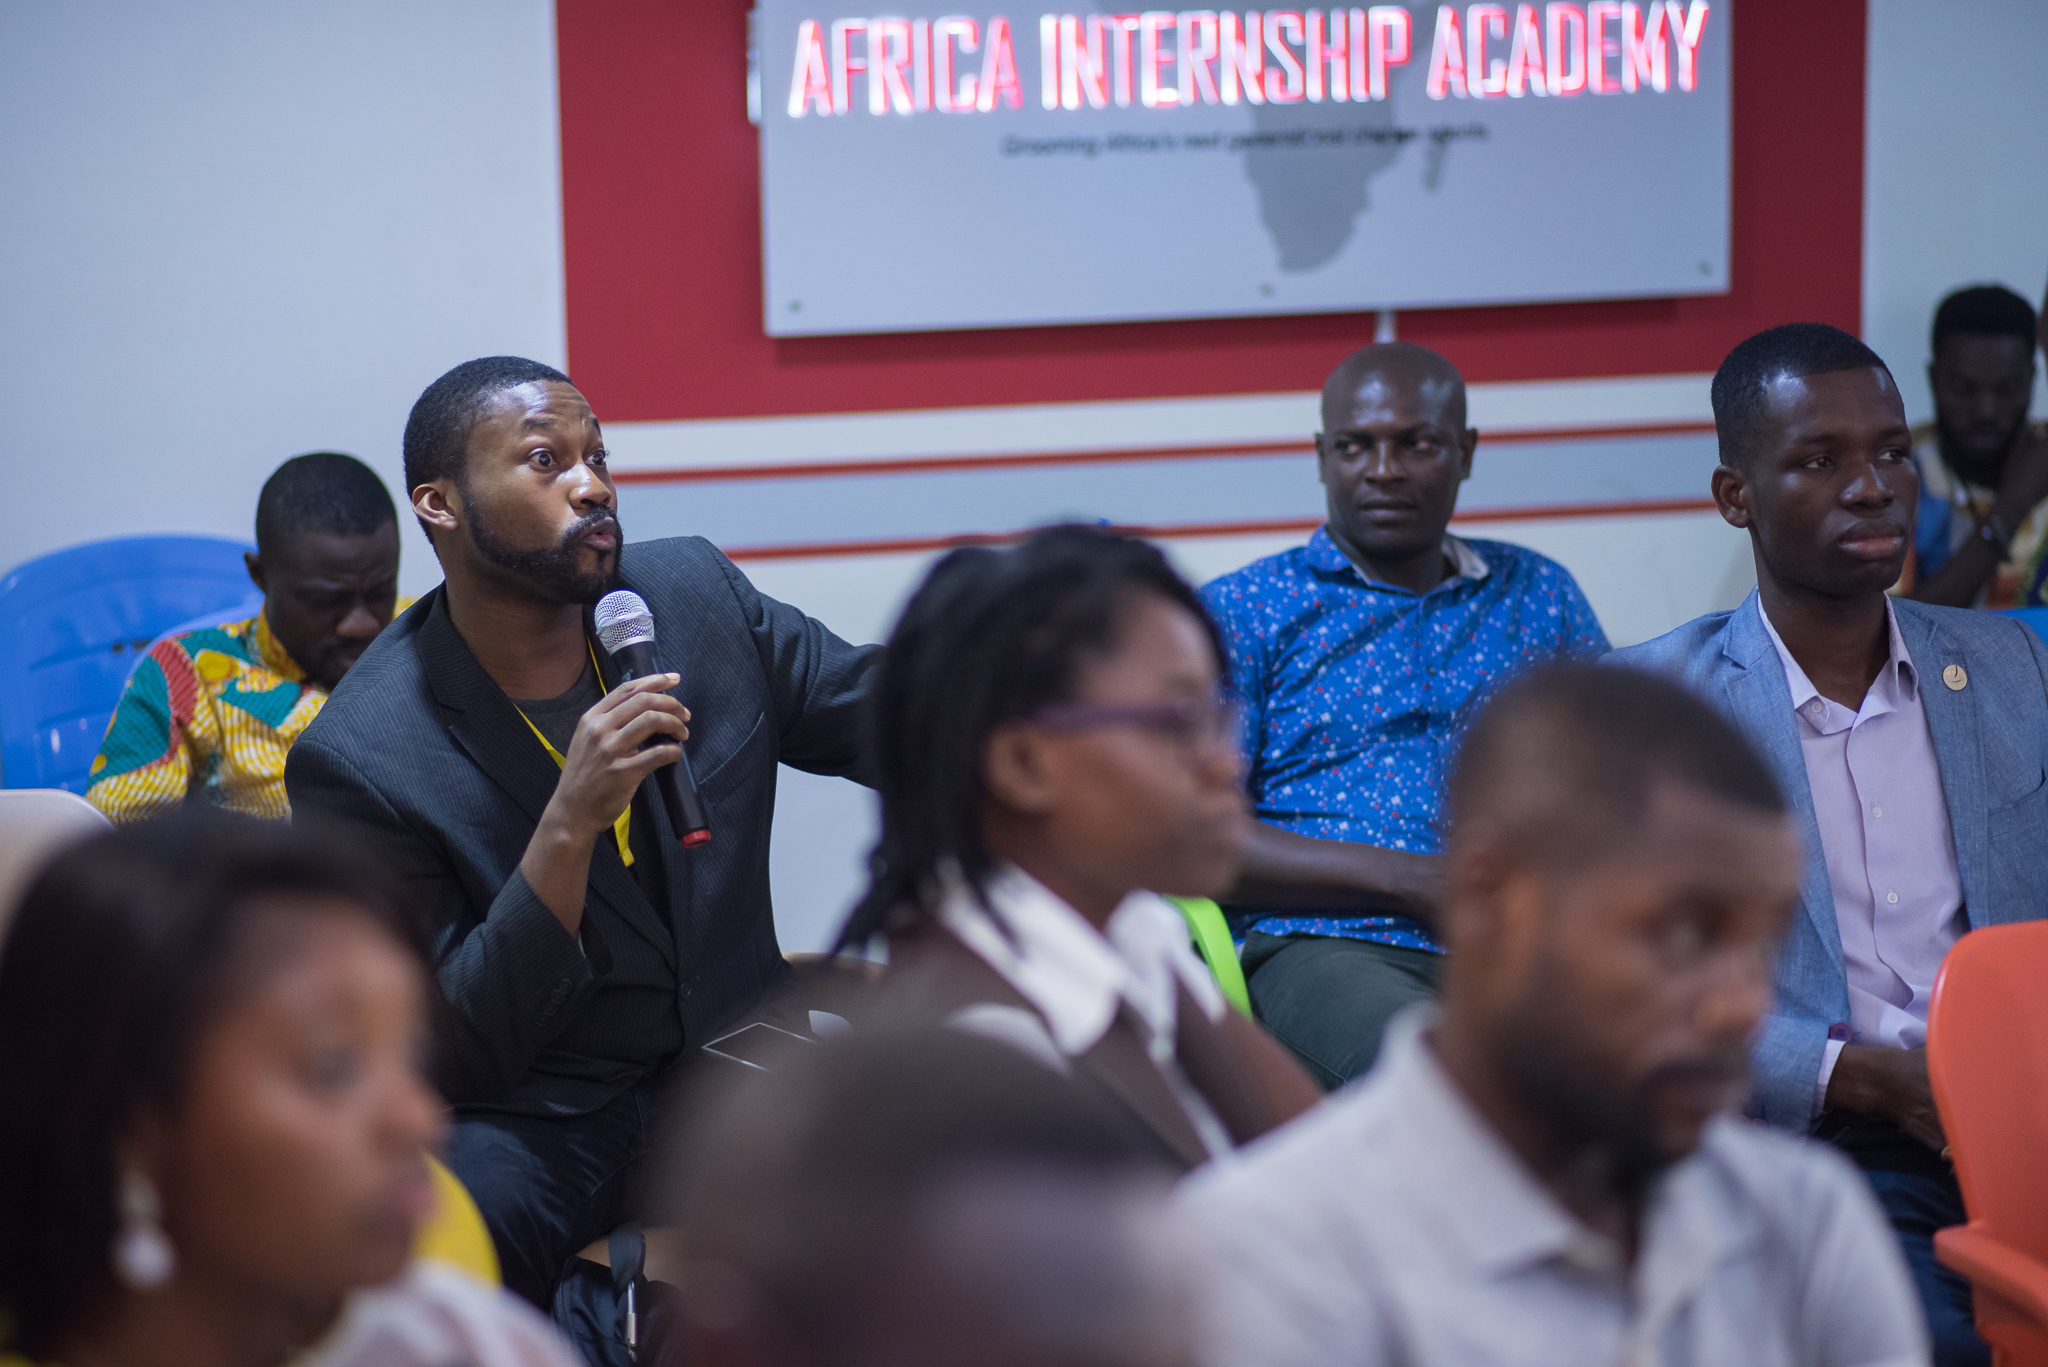 Who is the African millennial?